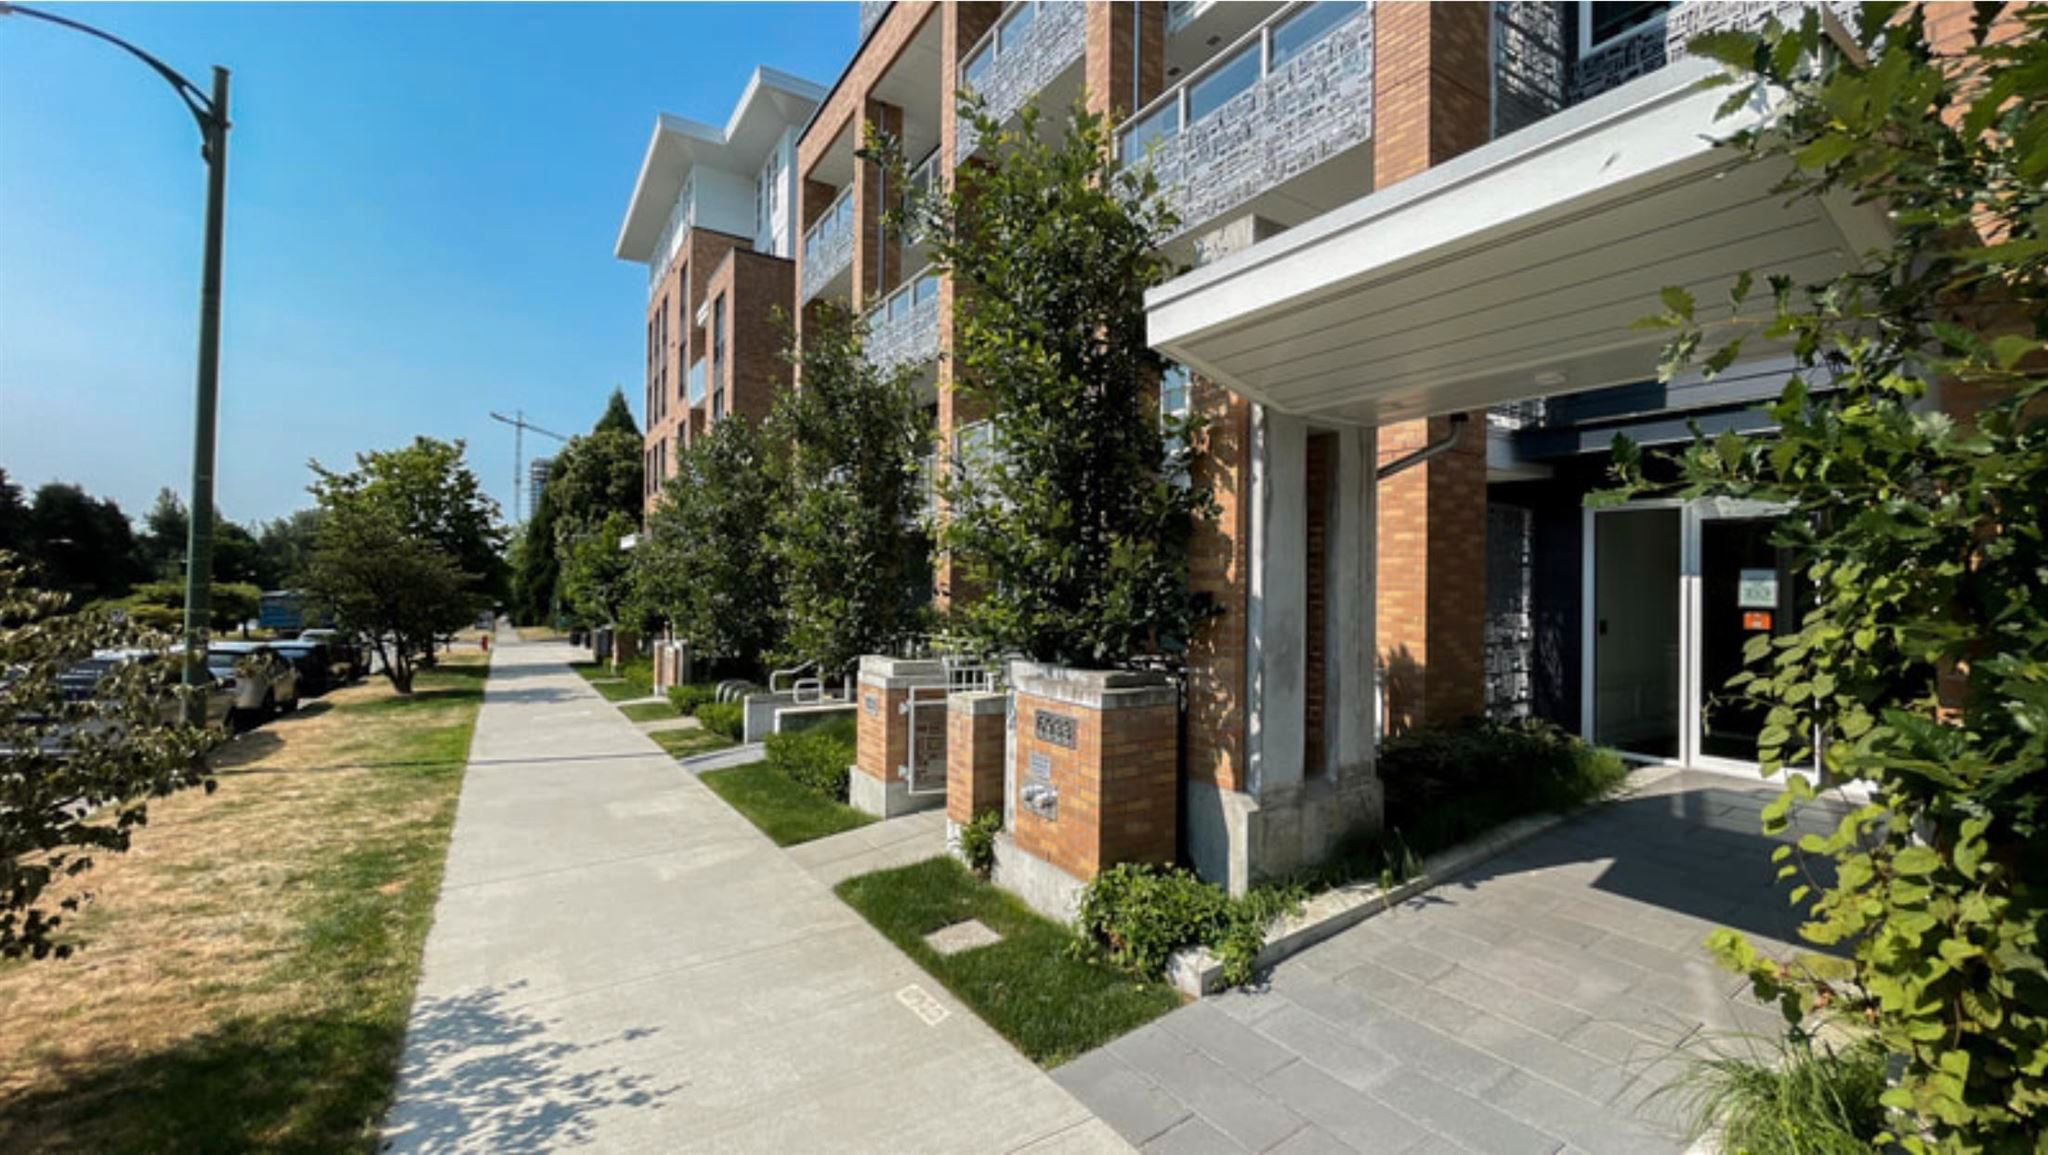 """Main Photo: 205 6933 CAMBIE Street in Vancouver: South Cambie Condo for sale in """"CAMBRIA PARK"""" (Vancouver West)  : MLS®# R2623423"""